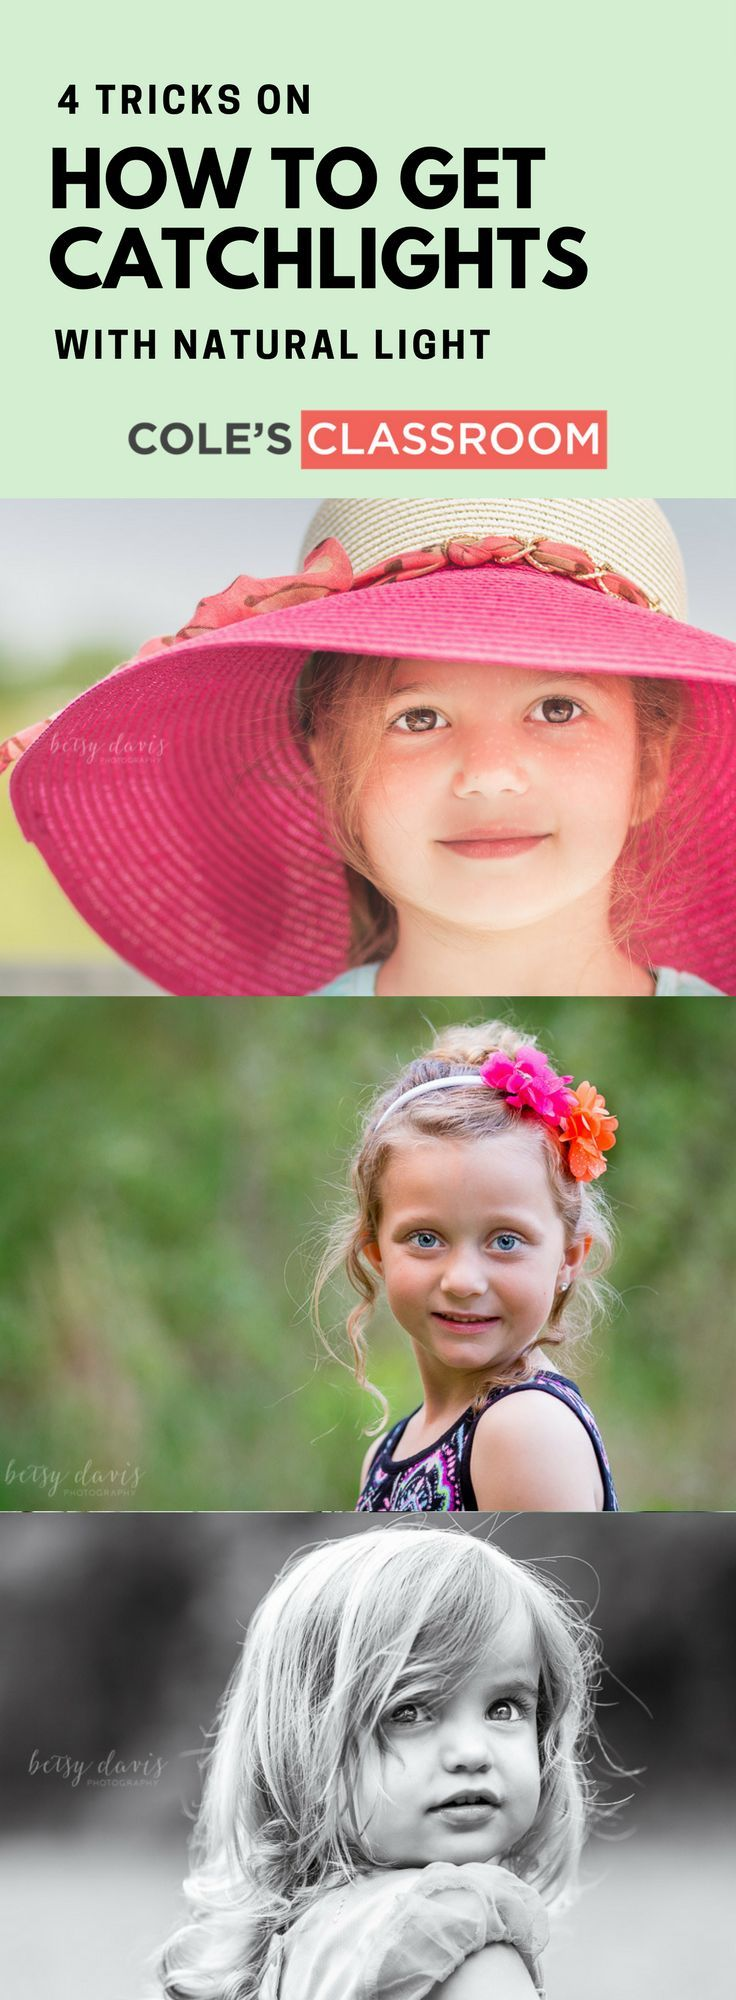 PHOTO TIPS & TECHNIQUE: 4 Tricks on How to Get Catchlights with Natural Light. Find more at: https://www.colesclassroom.com/4-tricks-get-catchlights-natural-light/